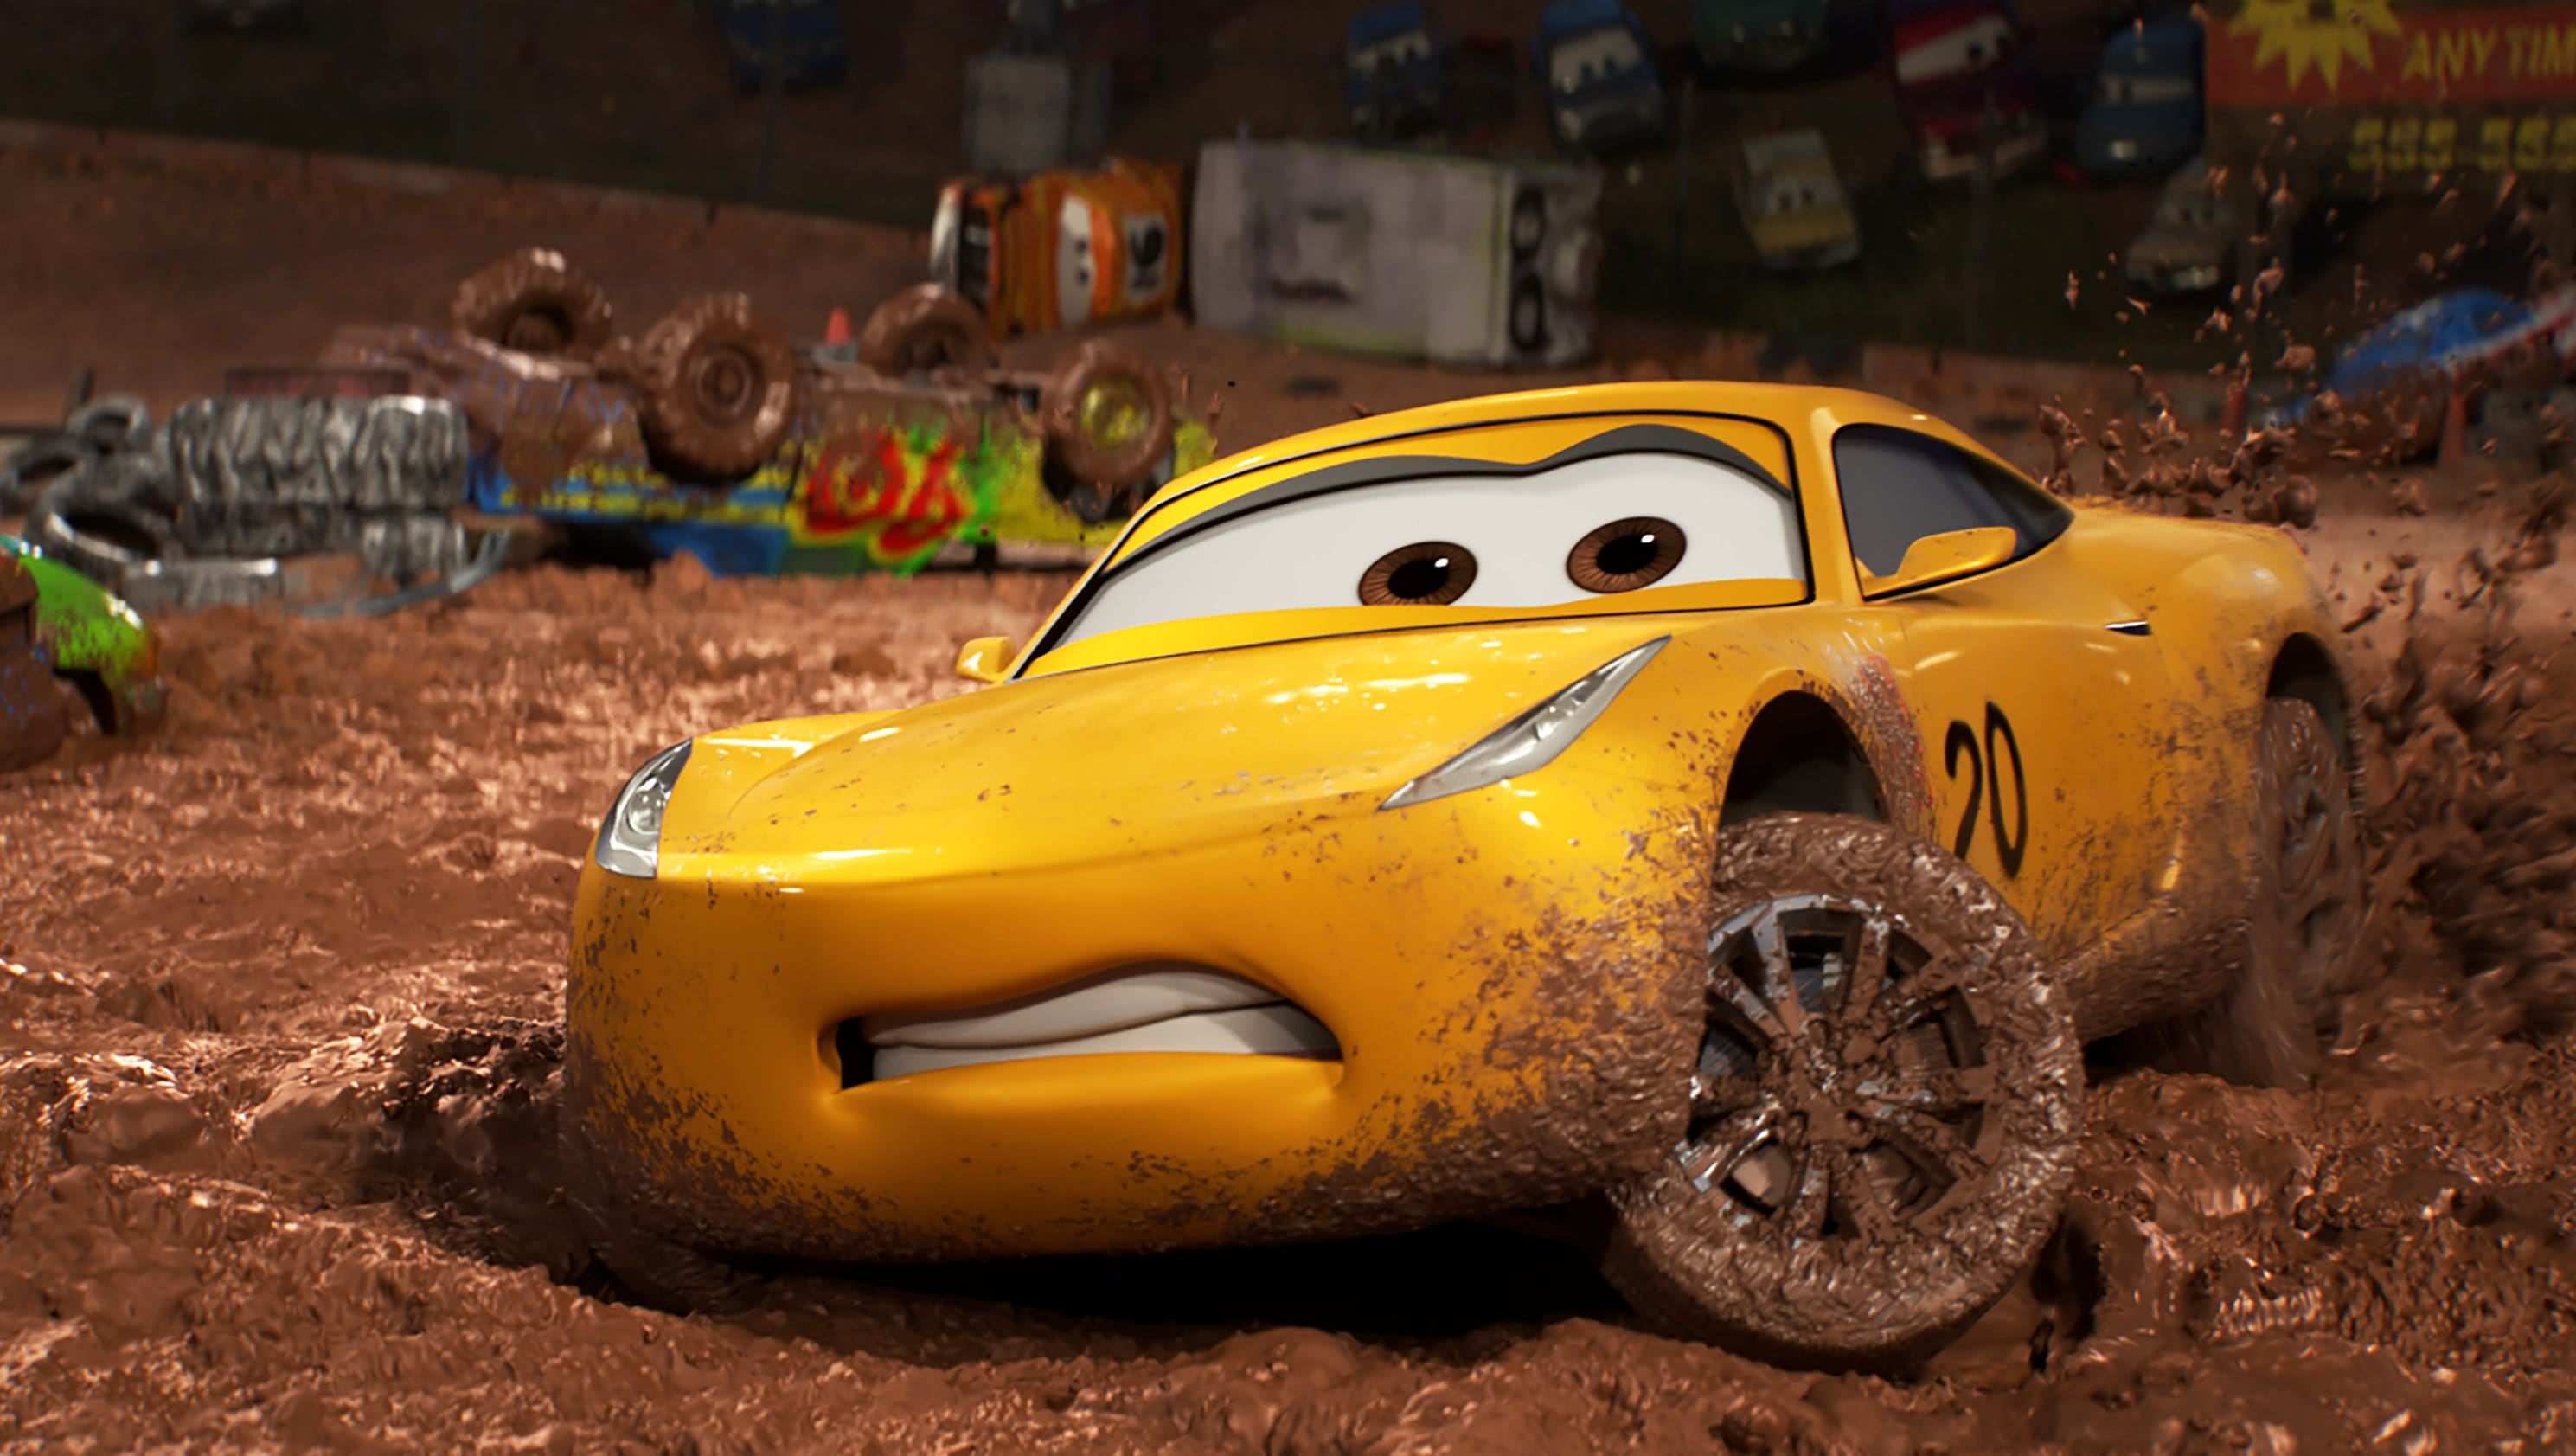 Cars Pixar S Boy Friendly Franchise Now Has A Role Model For Girls